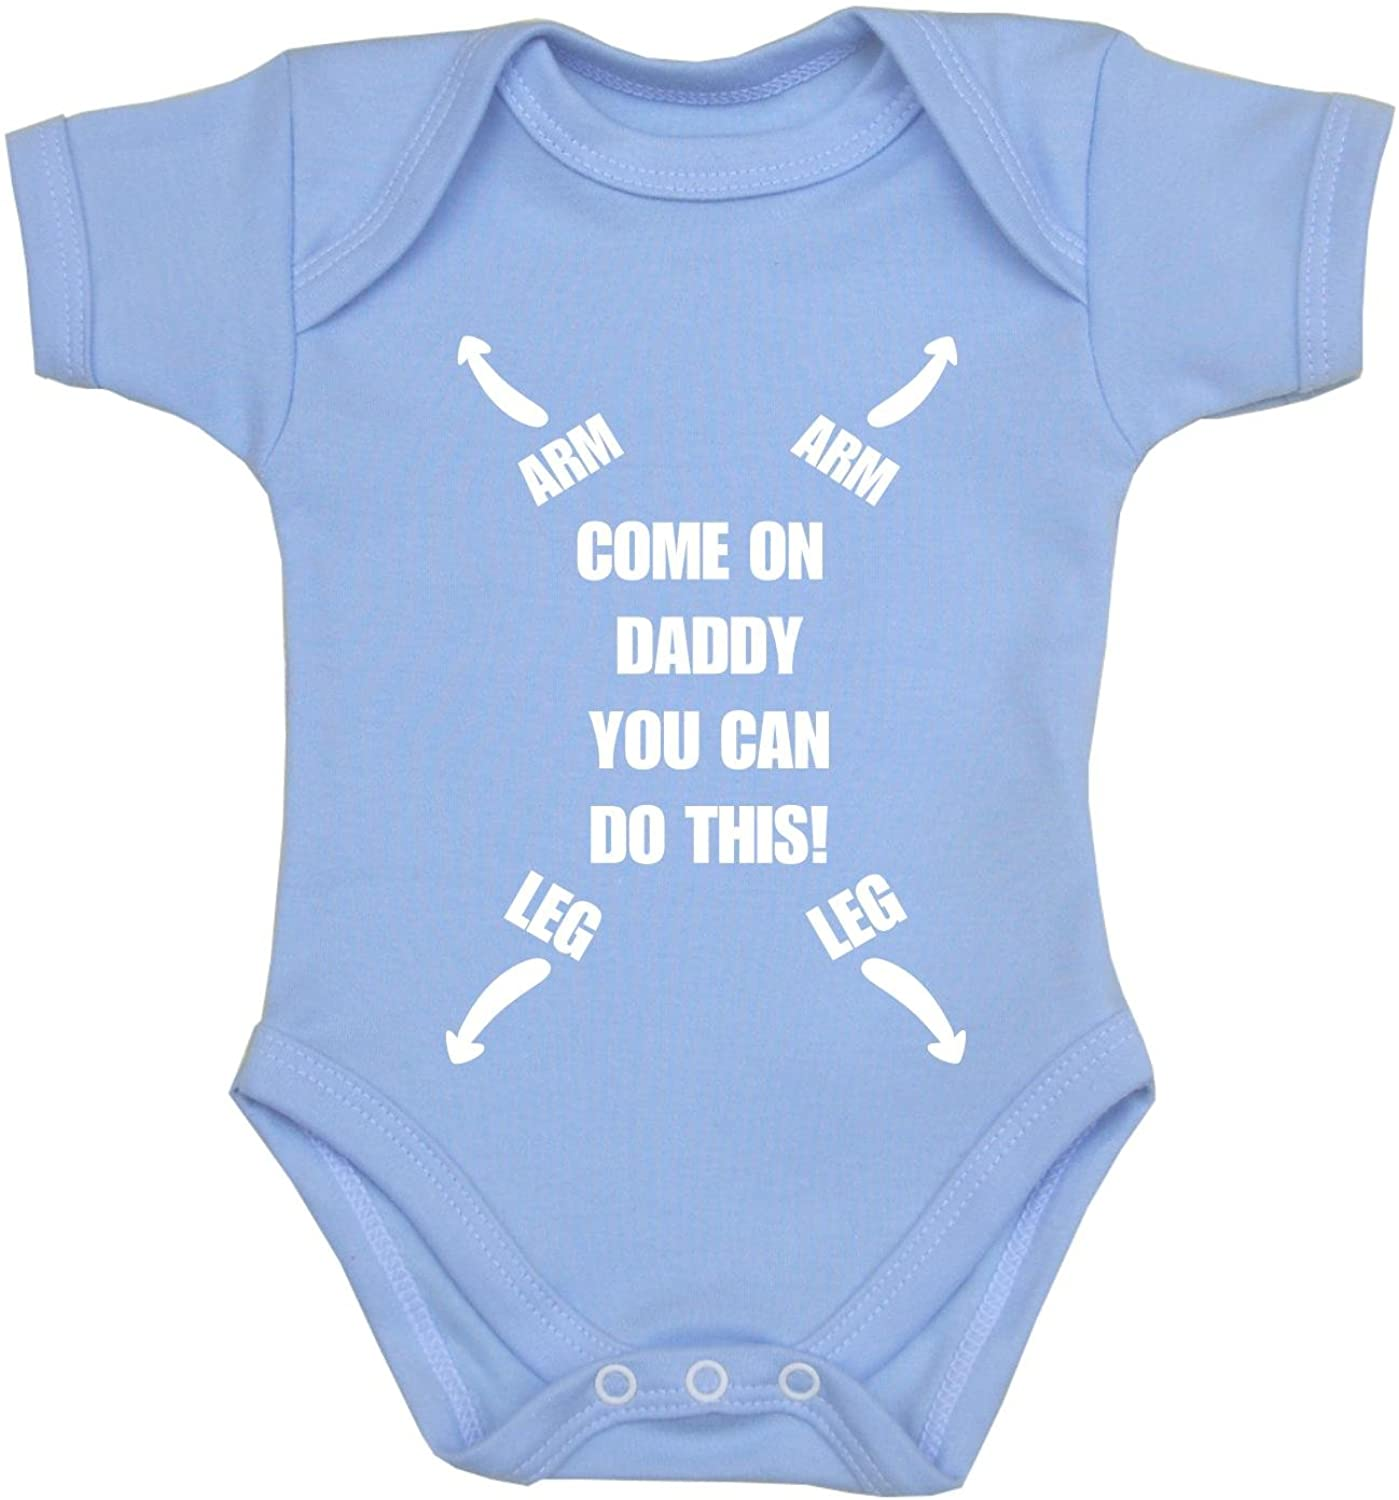 BabyPrem Baby Bodysuit Come on Daddy You Can Do This Cotton Newborn - 6 Months